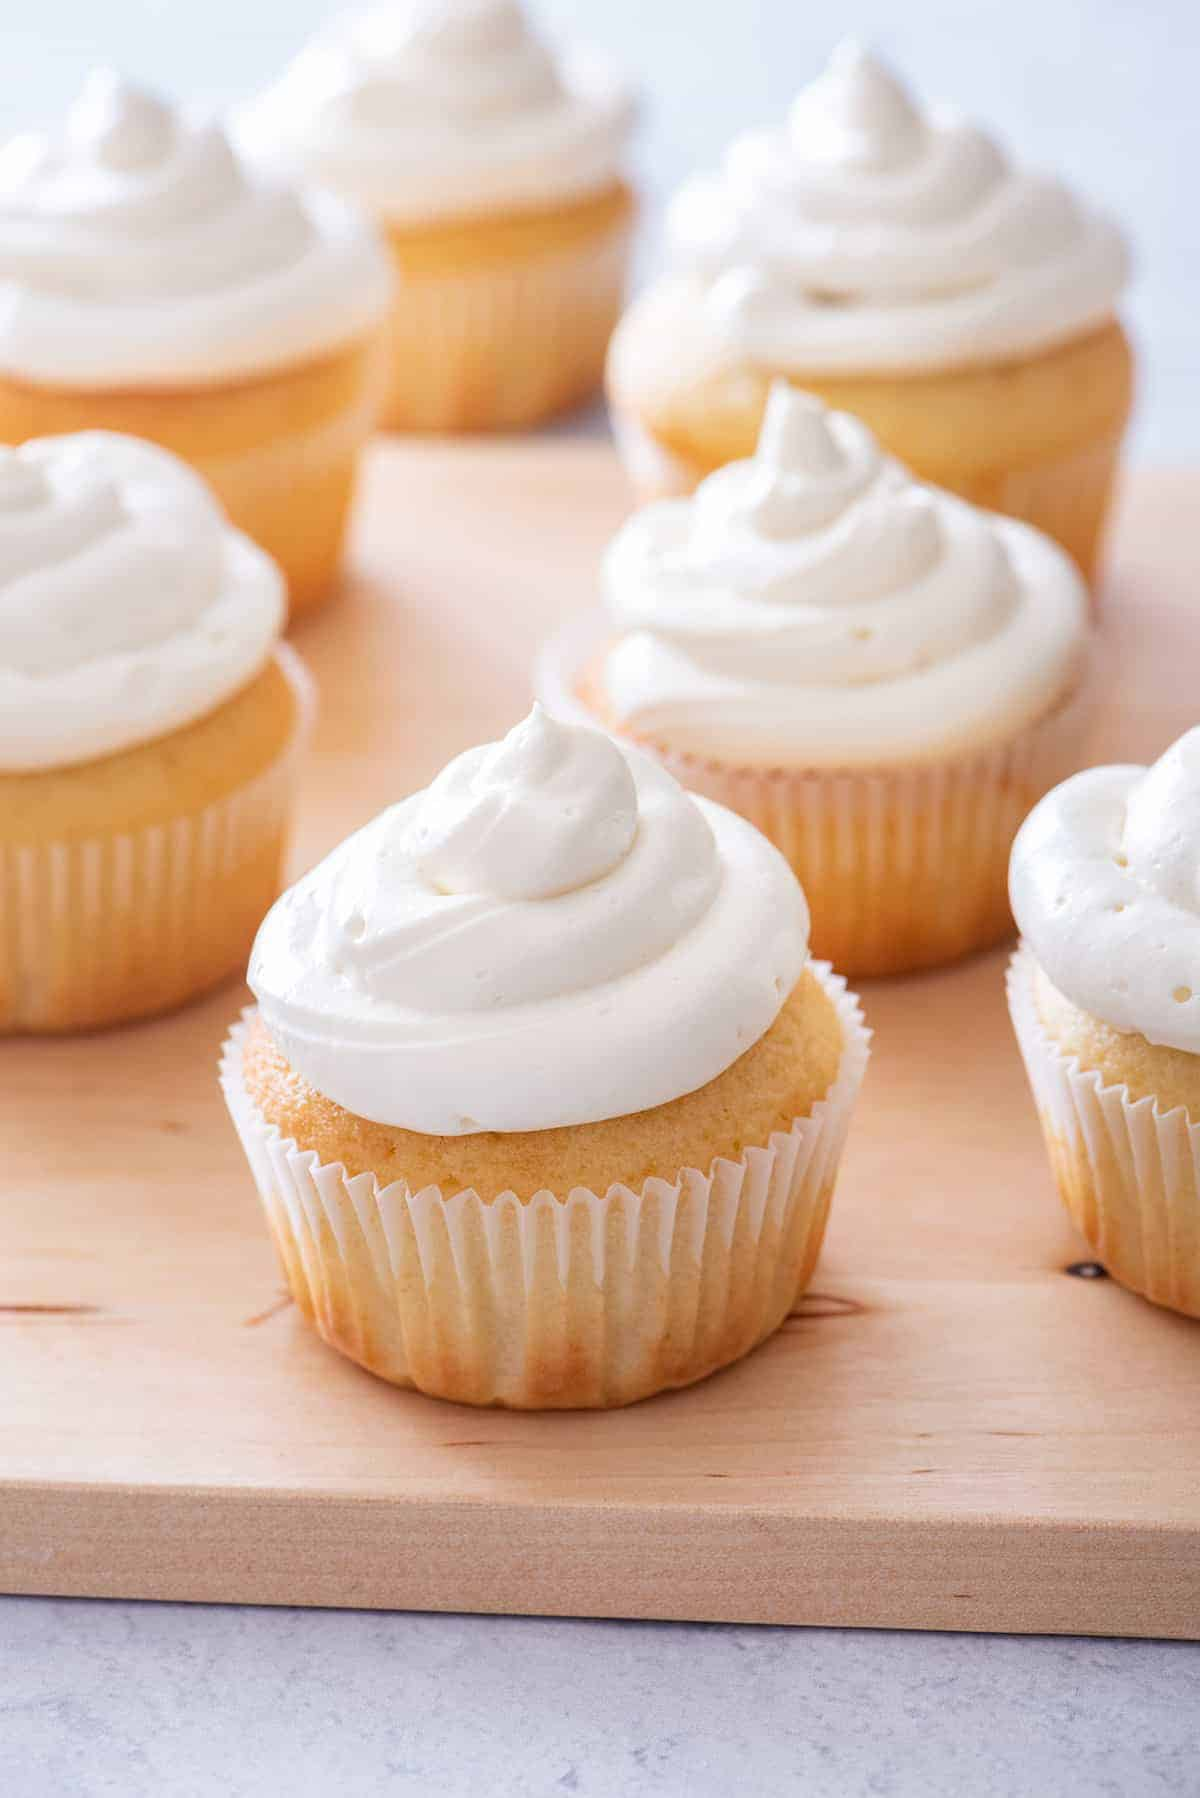 Homemade vanilla cupcakes with cream cheese frosting